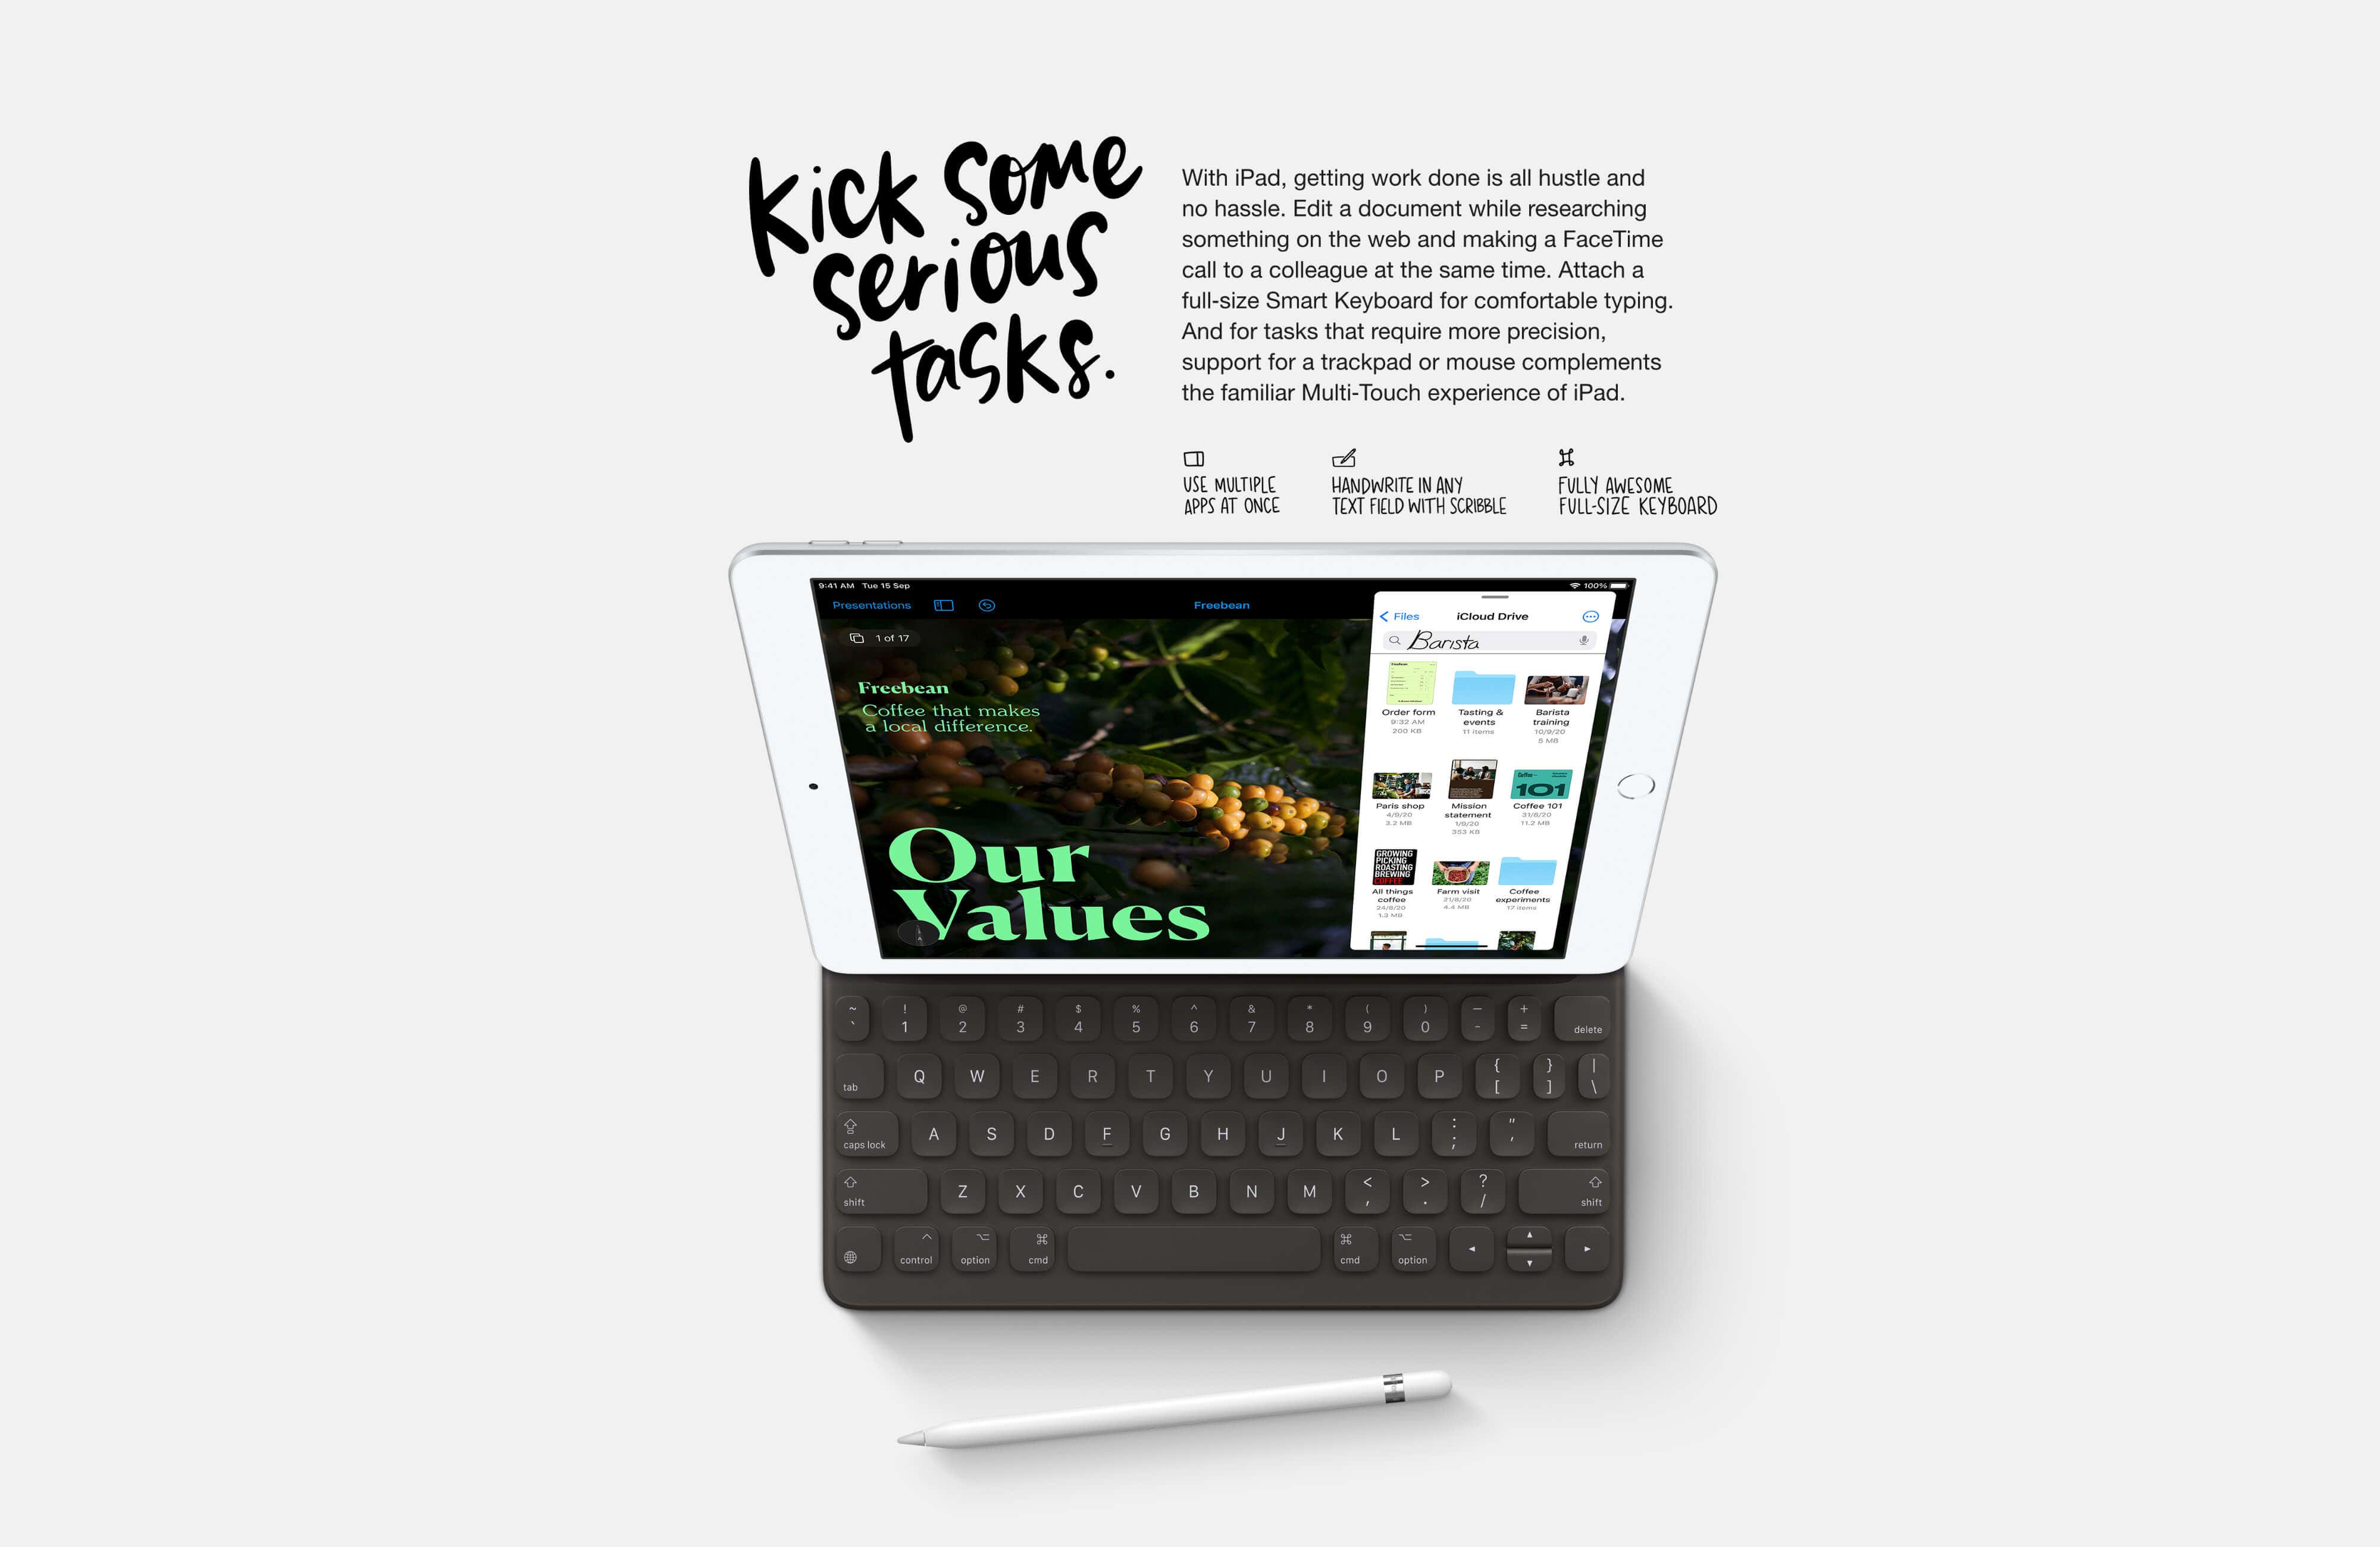 iPad 8th Generation - Kick some serious tasks, attach a full sized Smart keyboard for comfortable typing.